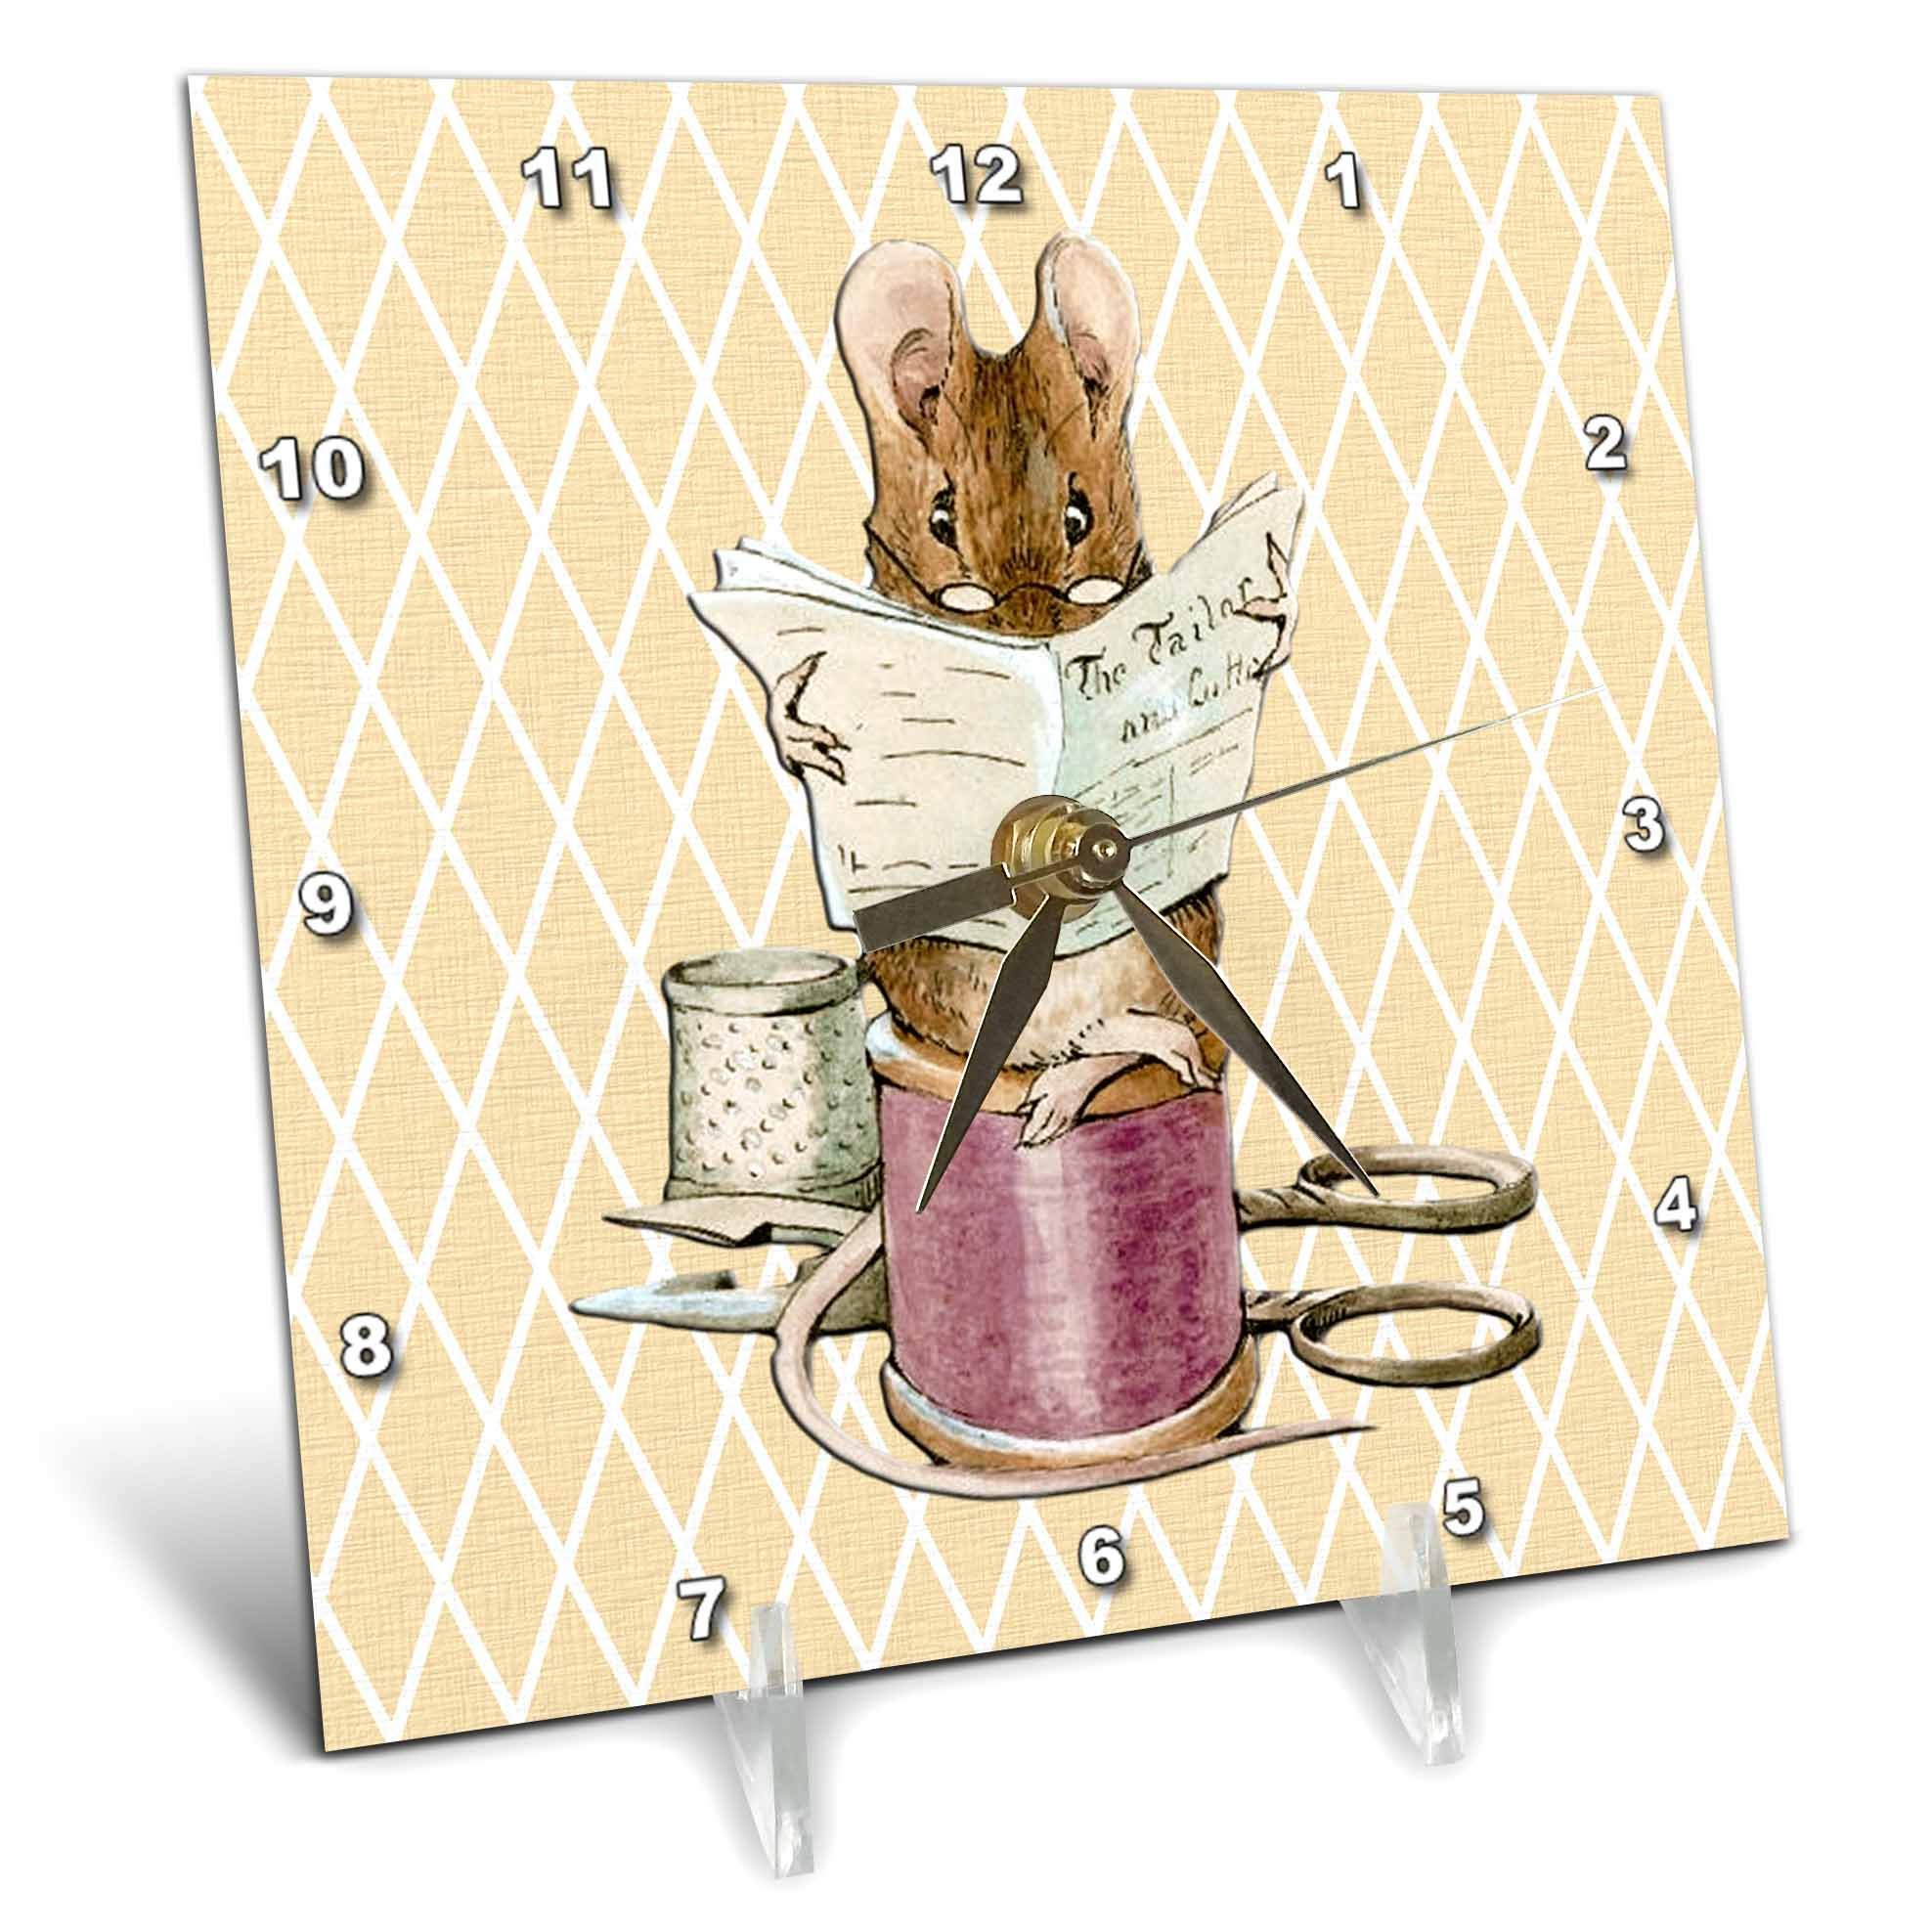 3dRose dc_79401_1 Sewing Mouse- Vintage Art- Animals-Desk Clock, 6 by 6-Inch